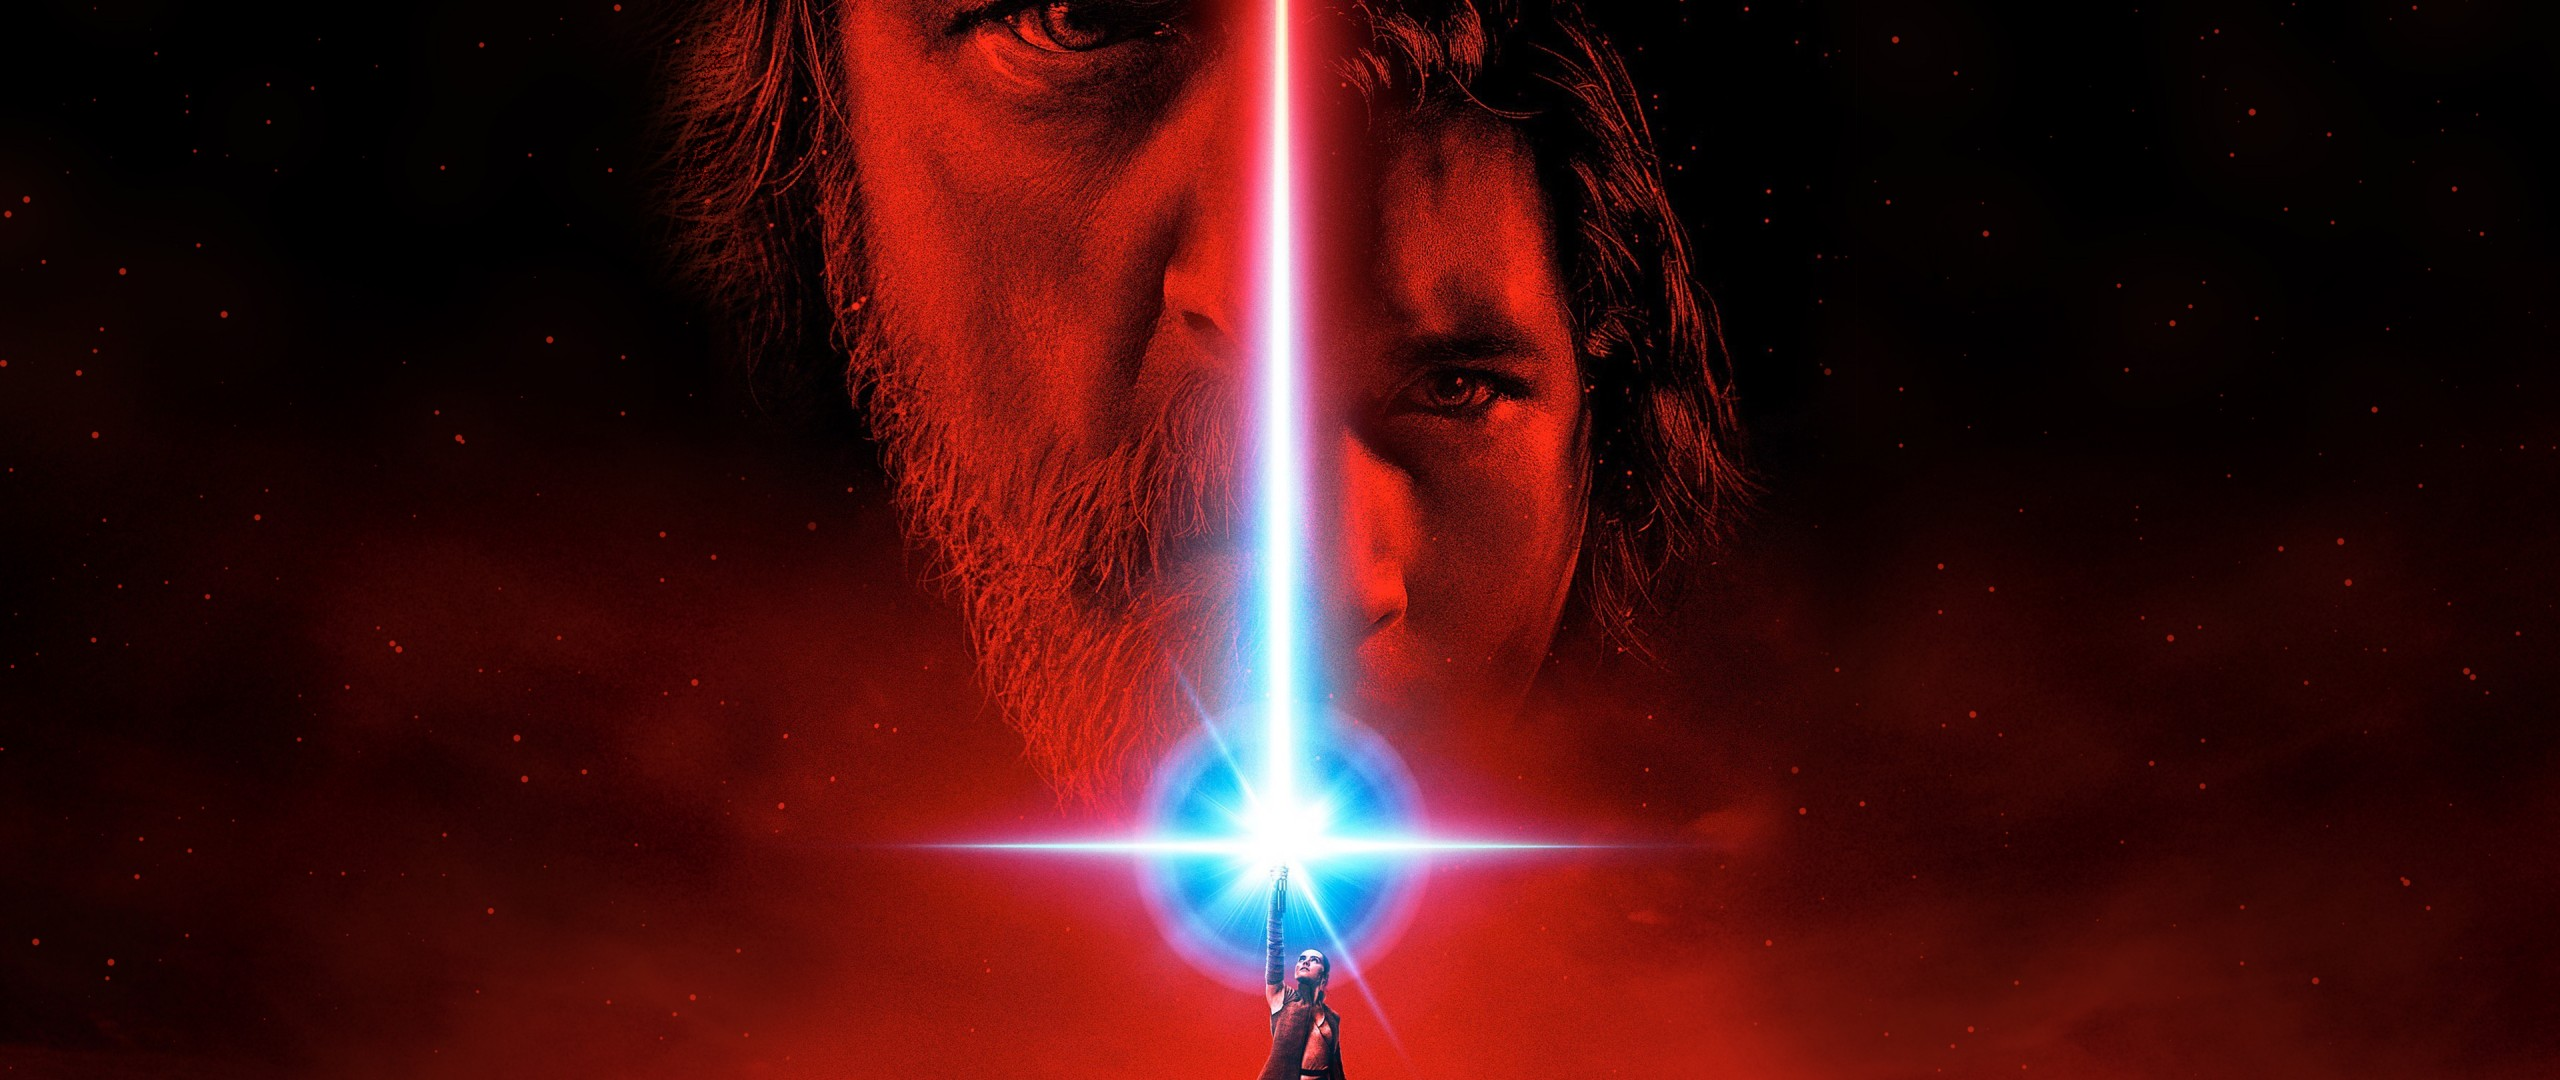 Star Wars Episode Viii The Last Jedi 4k 2560x1080 Wallpaper The Hot Desktop Wallpapers And Backgrounds For Your Pc And Mobile